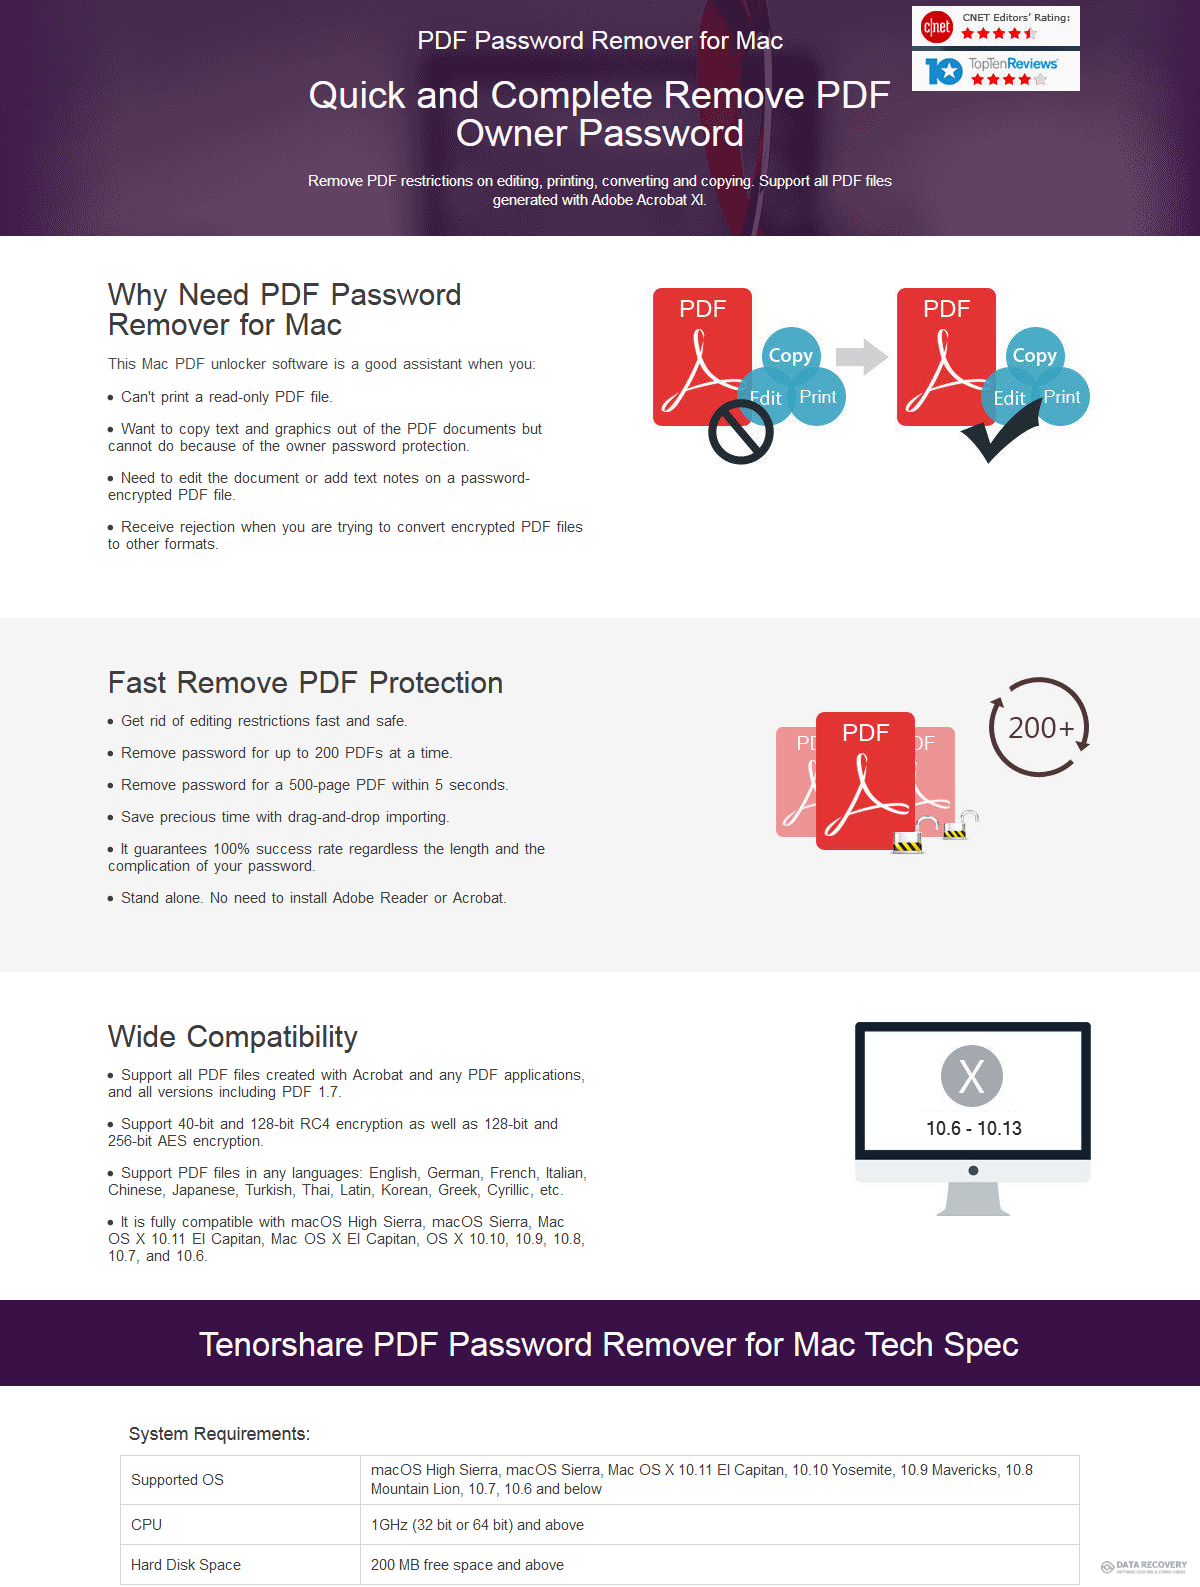 Tenorshare PDF Password Remover for Mac Discount Coupon Code